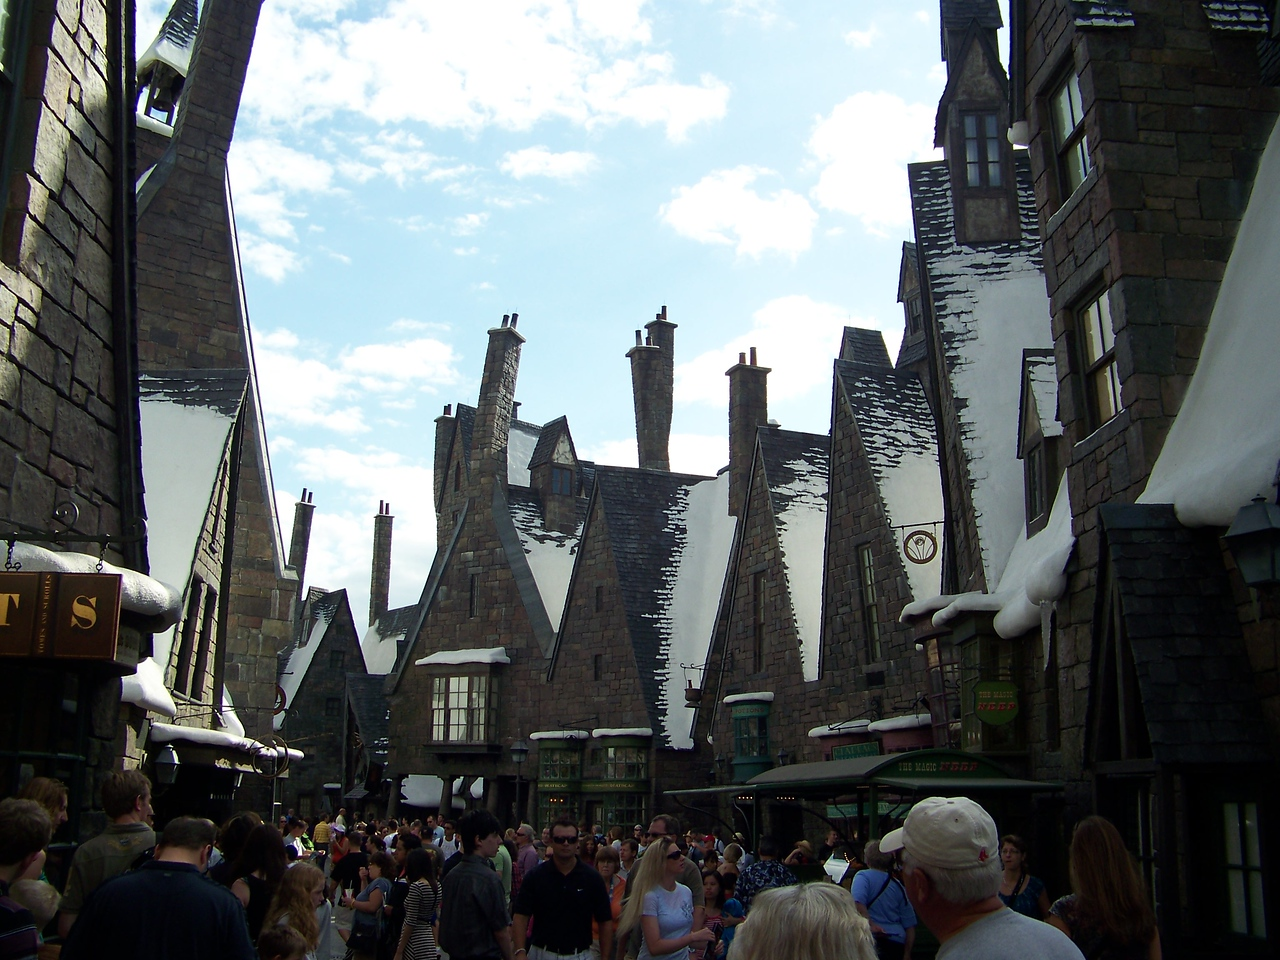 However, Hogsmeade is also incredibly cramped, as you can see by the people crowding the street.  All the shops were designed for much lighter crowds than we experienced, and this was nowhere near Orlando's peak tourist season.  It must be a nightmare then!<br /> [Universal Islands of Adventure - Wizarding World of Harry Potter]